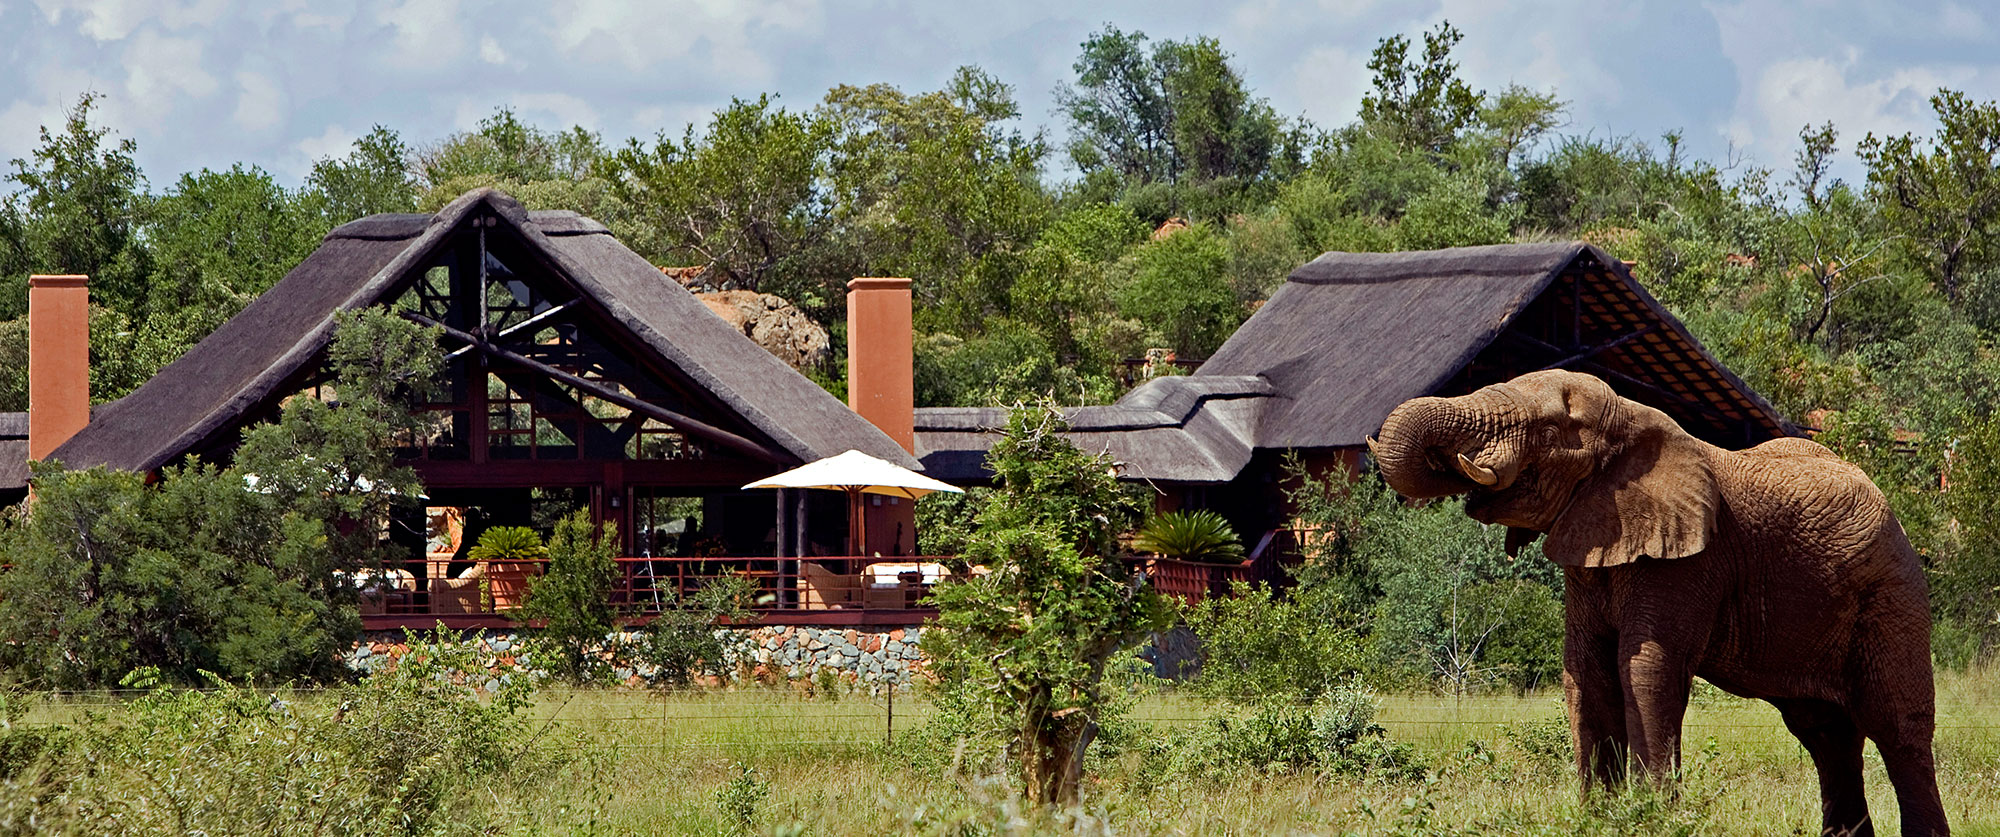 South Africa Family Vacation - South Africa - Family Travel - Wildlife - Encounters - Handcrafted - Vacation